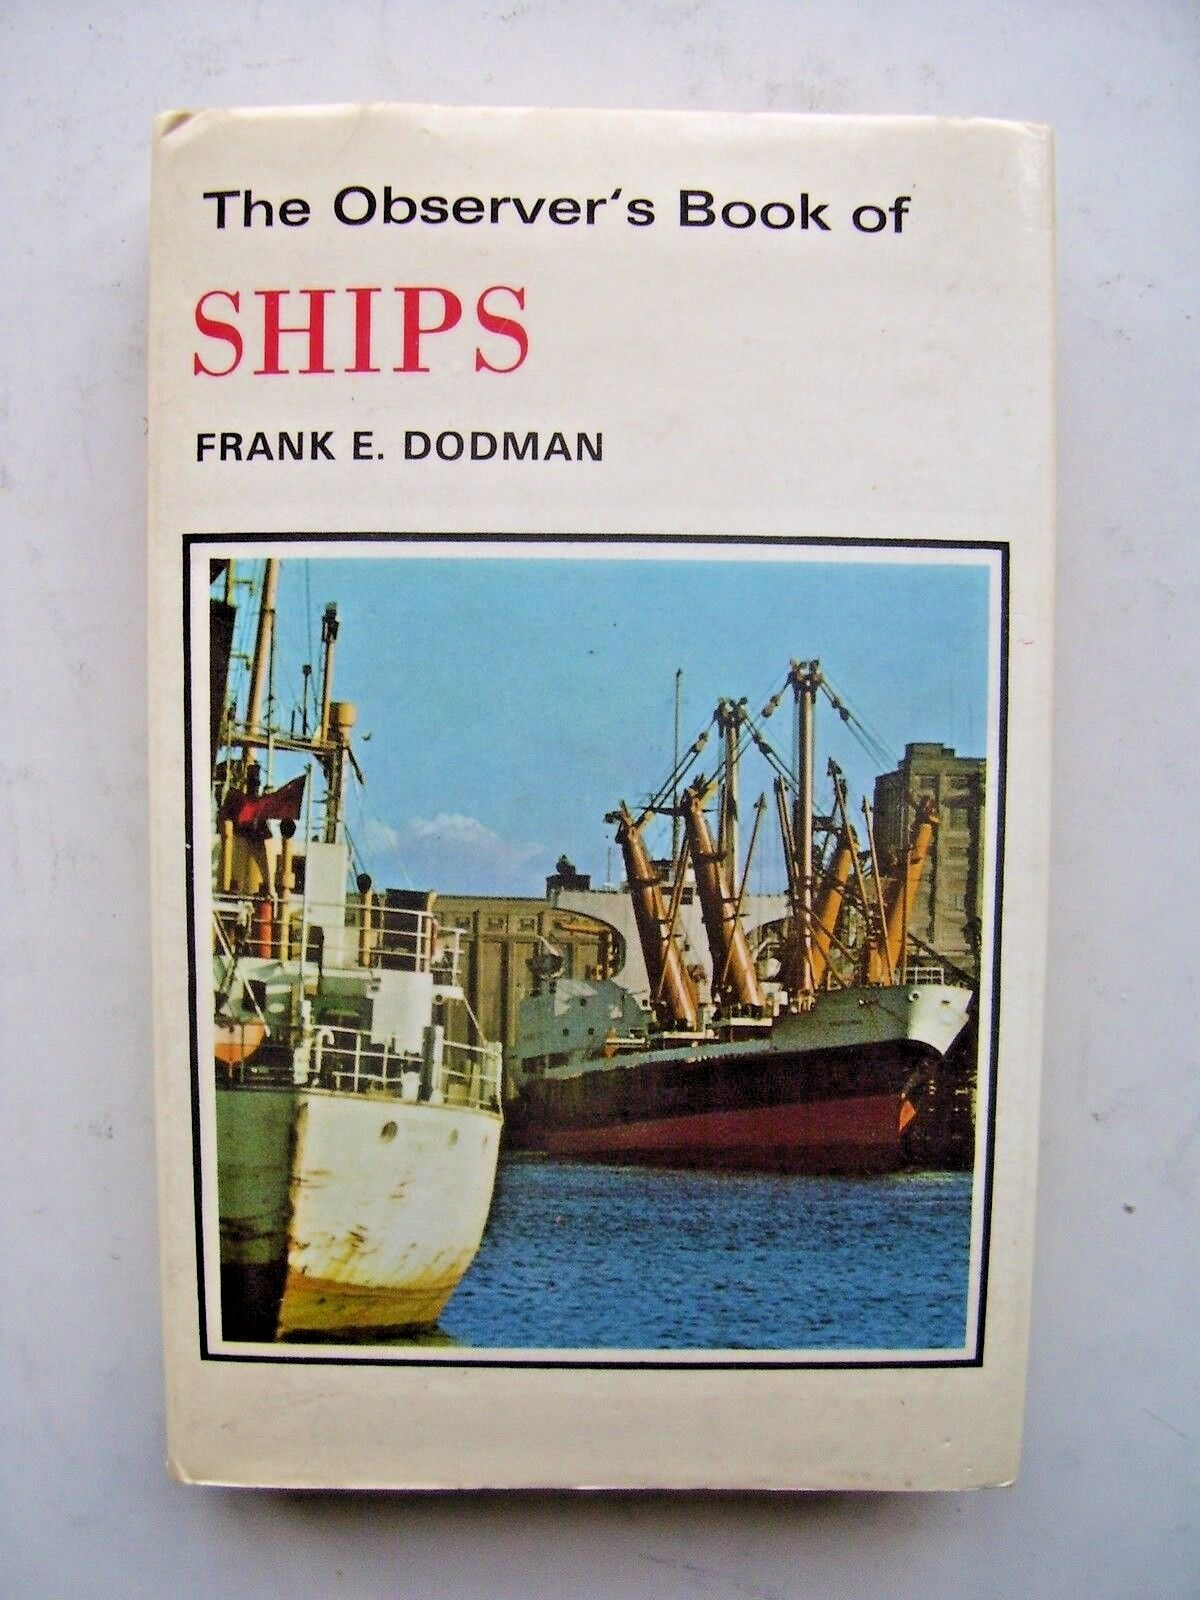 The Observer's Book of Ships (1975)